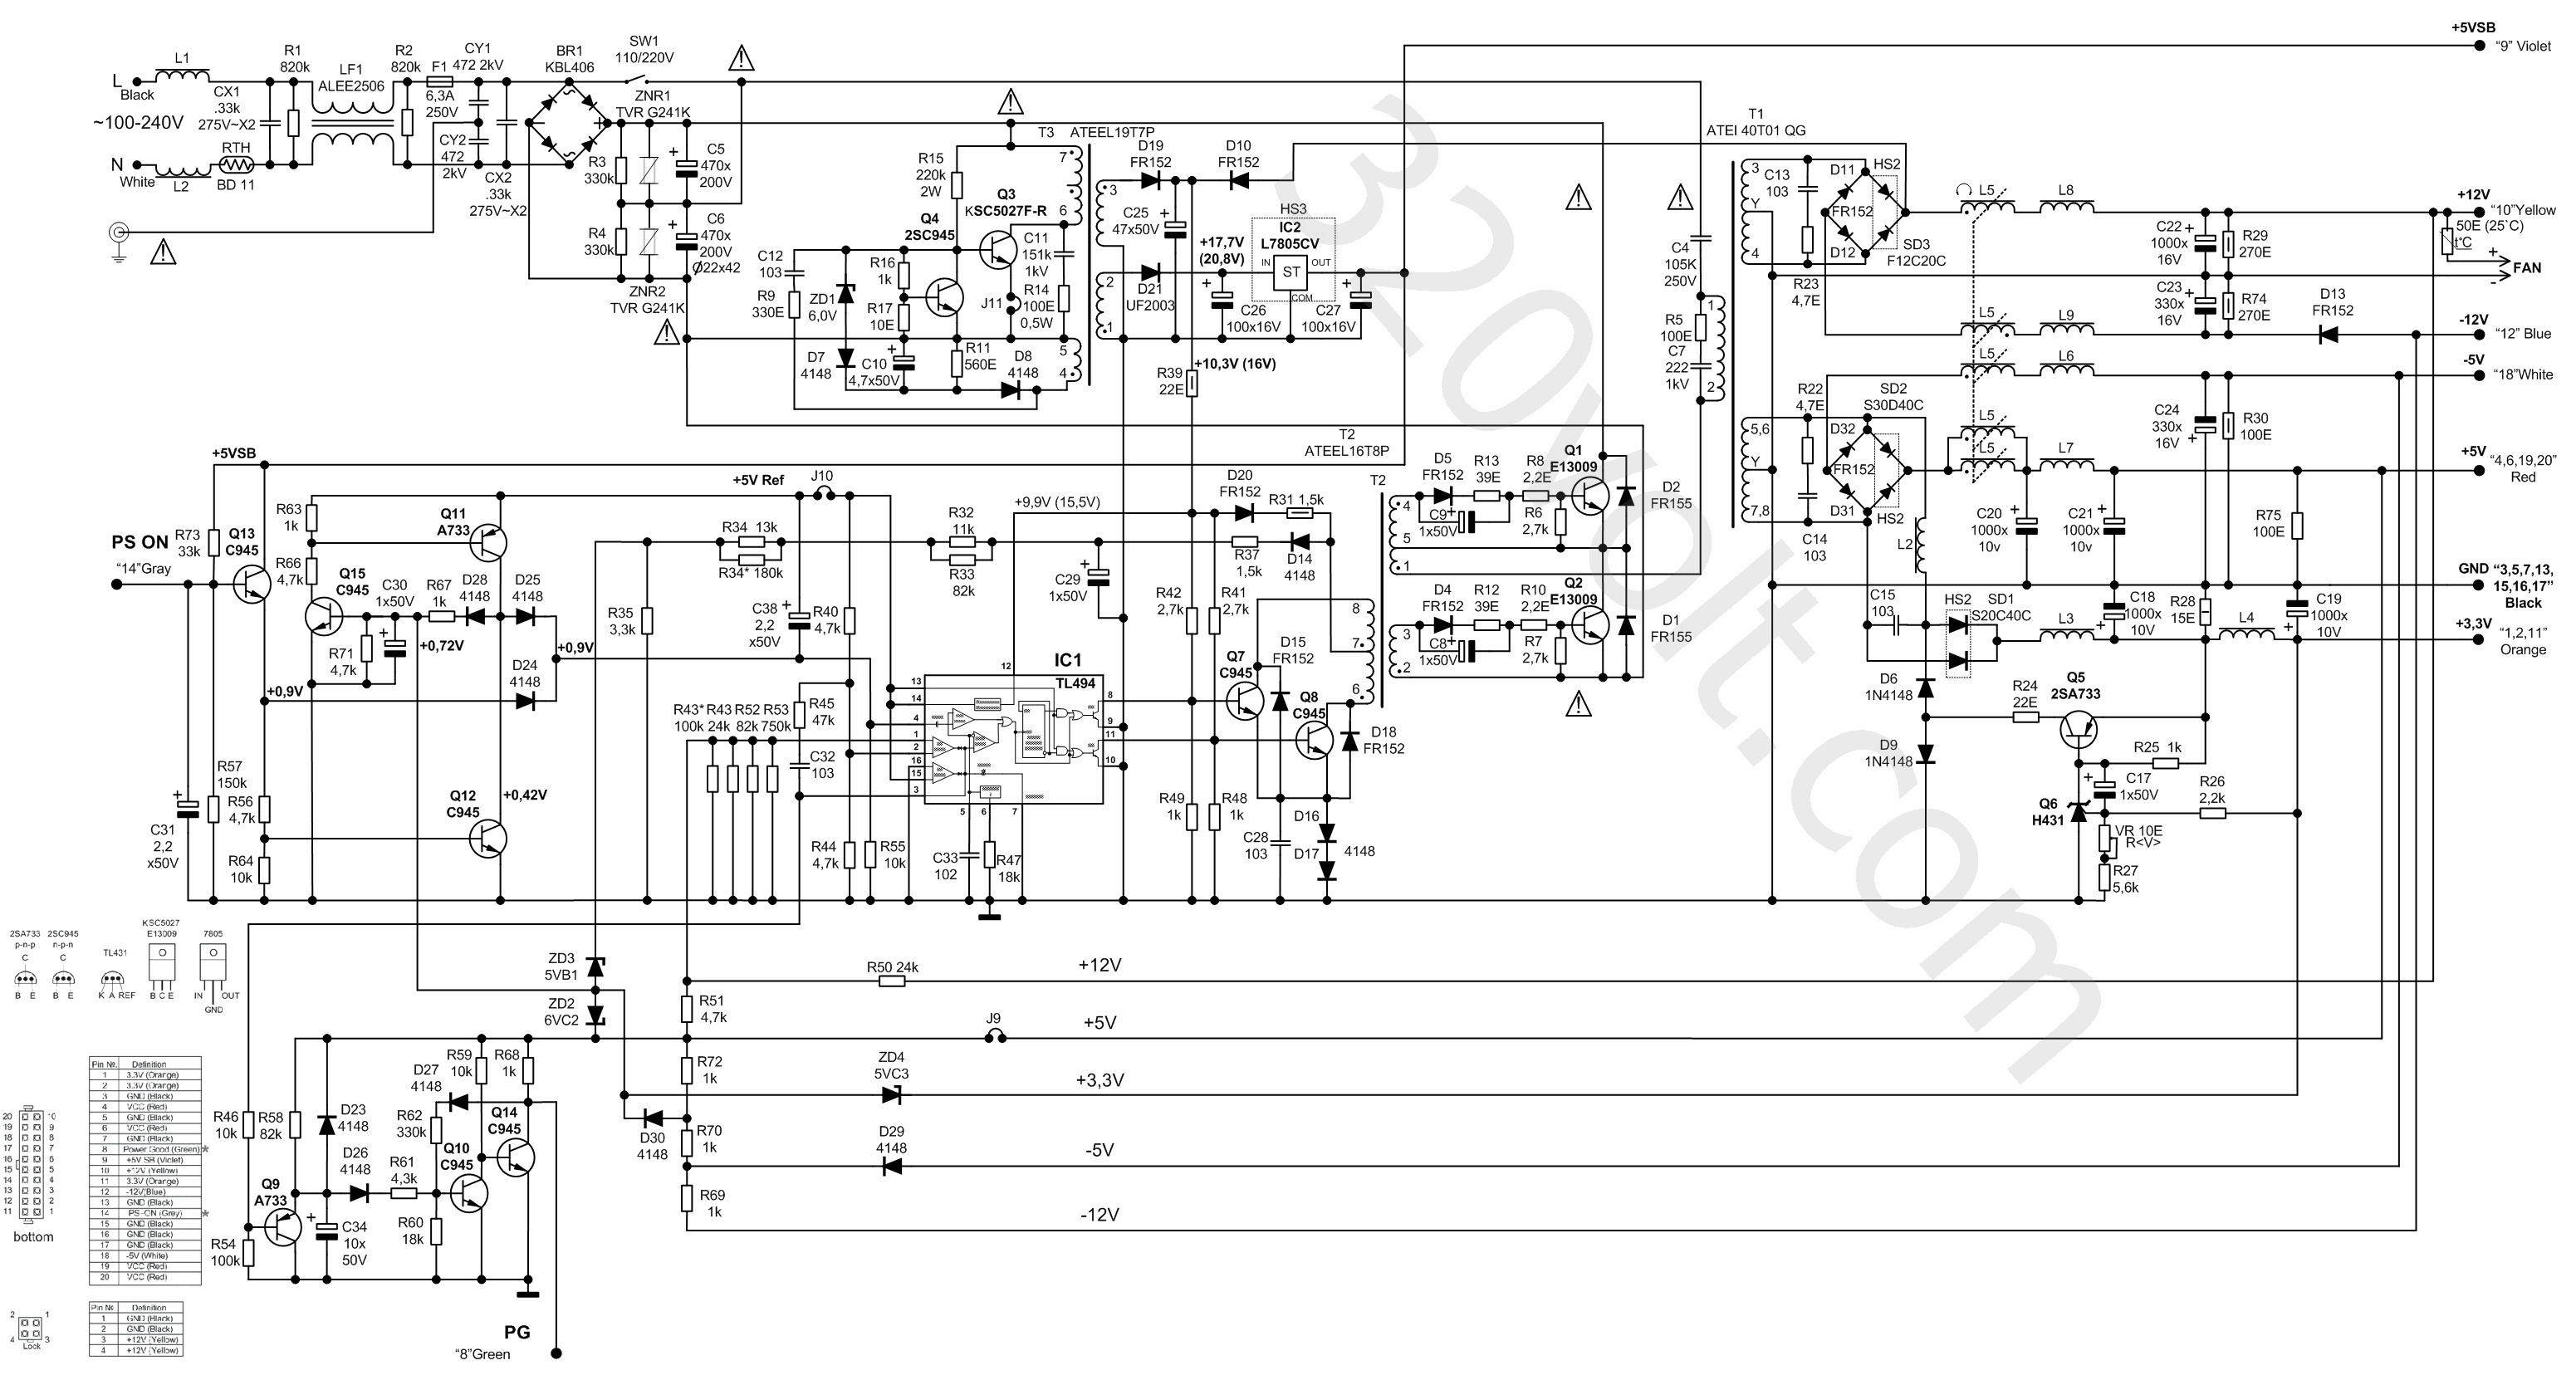 Atx Psu Circuit Diagram Smps Power Supply Tl494 Octek X25d 250w Elektronik Devreler.jpg Wiring Diagram.